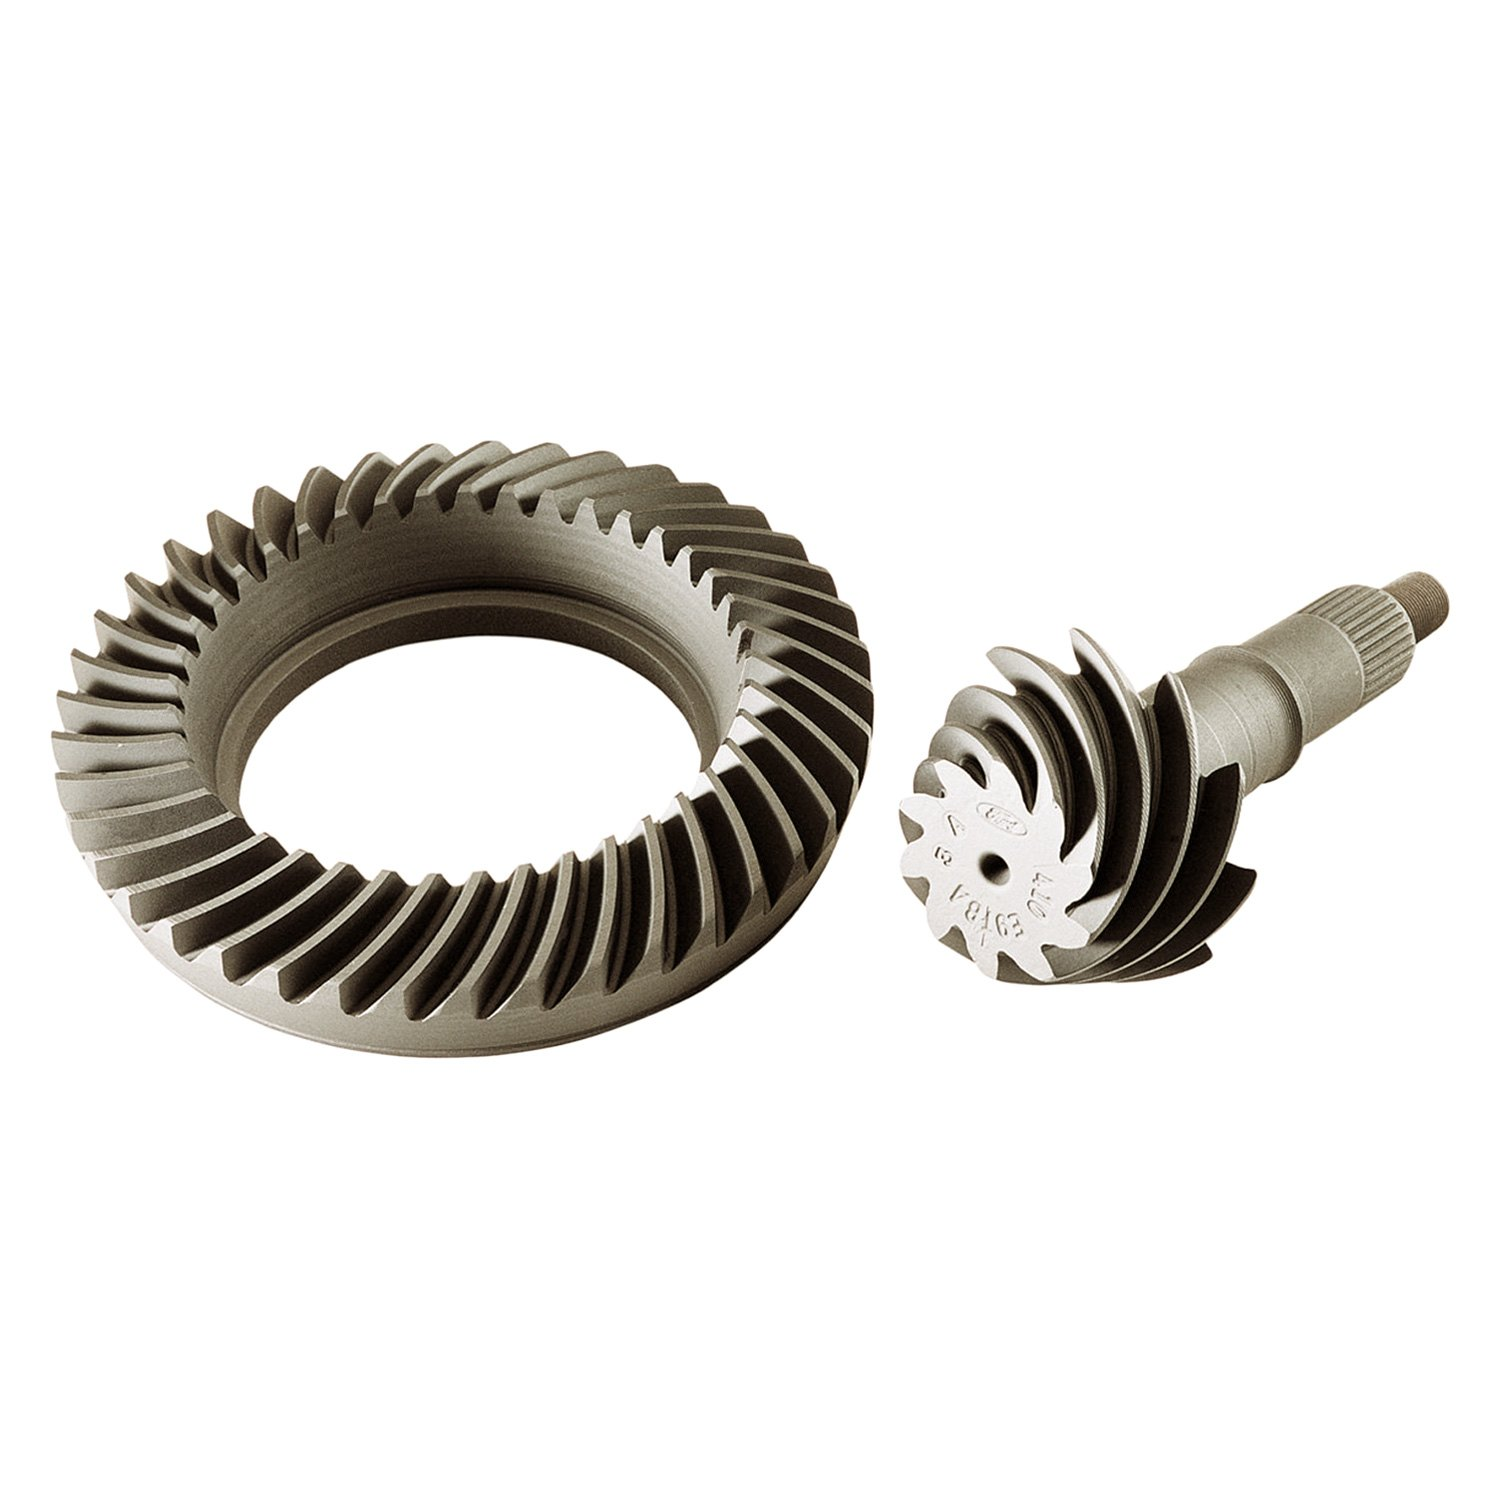 Ford Performance® M-4209-88456 - Ring and Pinion Gear Set